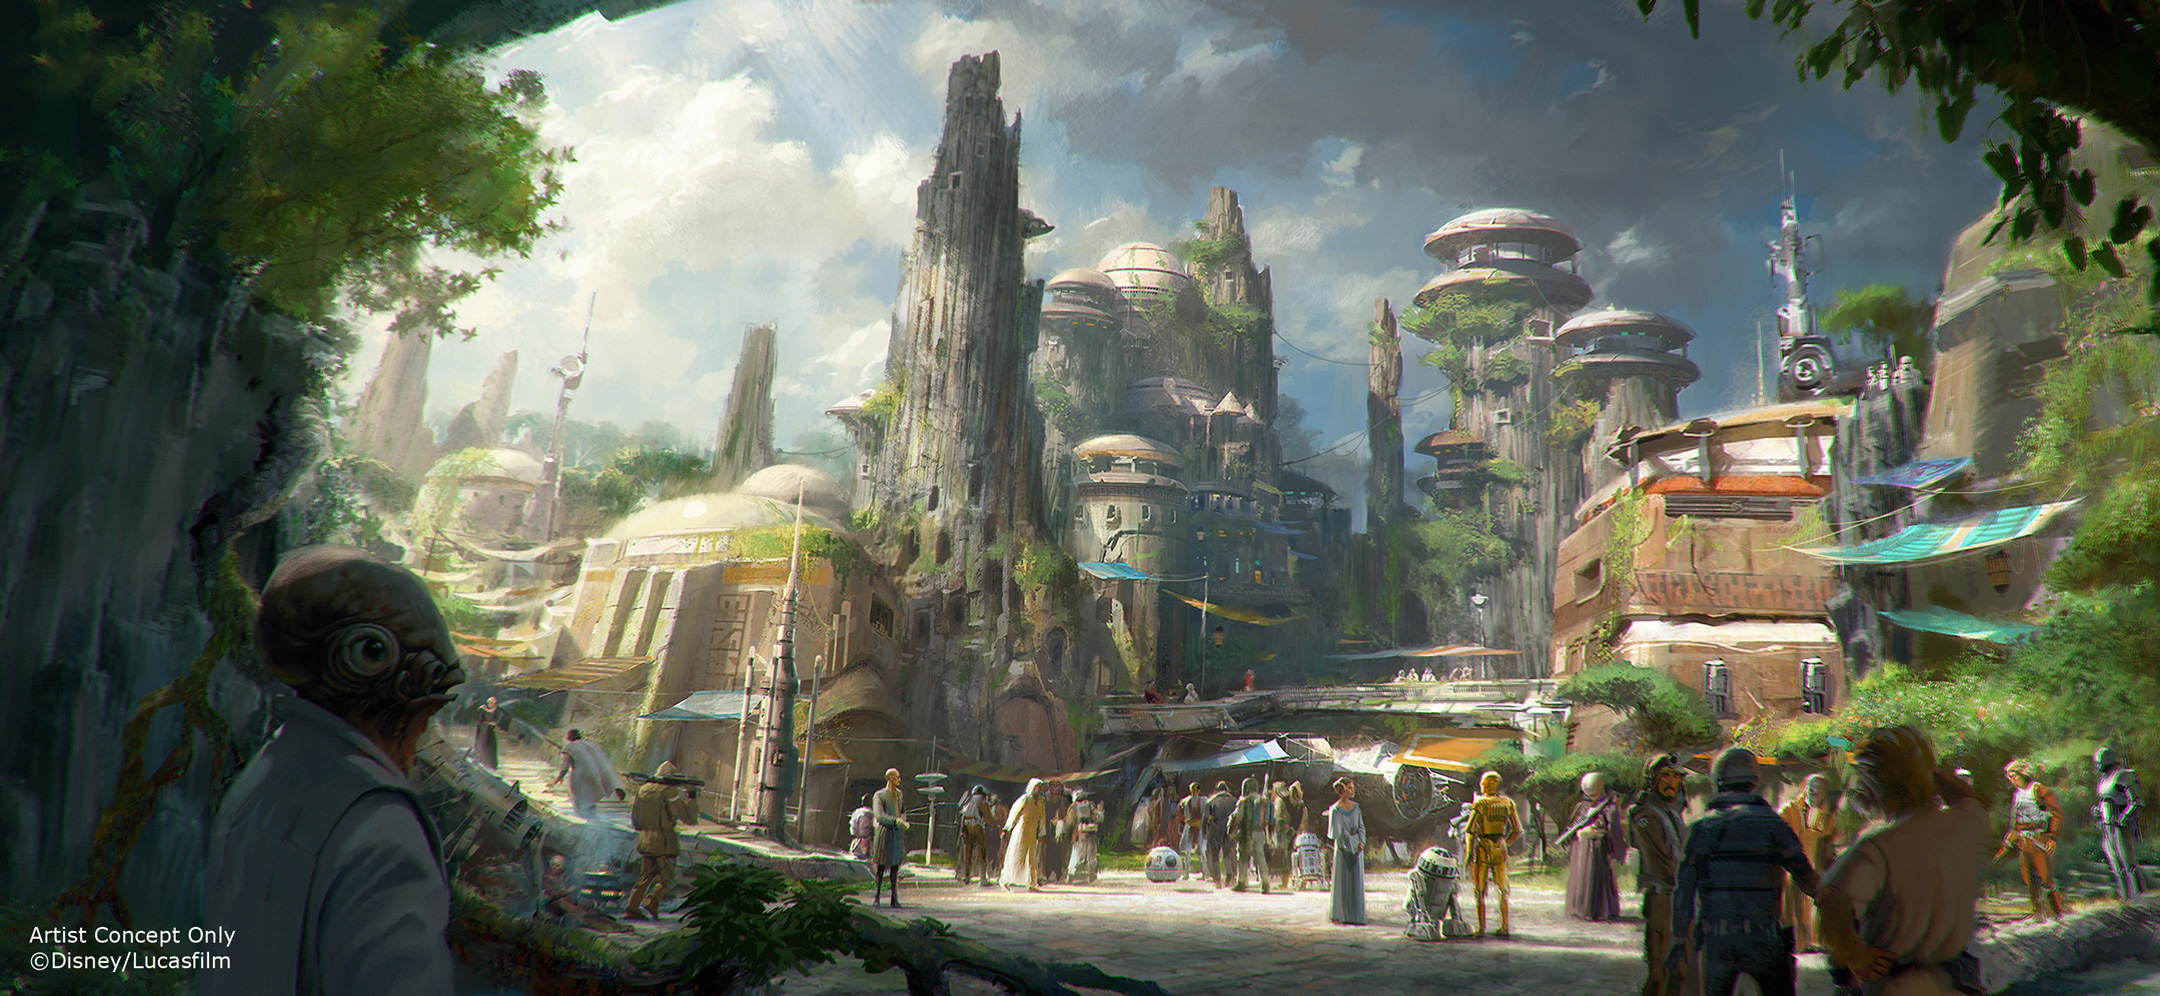 Disney Releases Concept Art for Upcoming Star Wars-Themed Lands